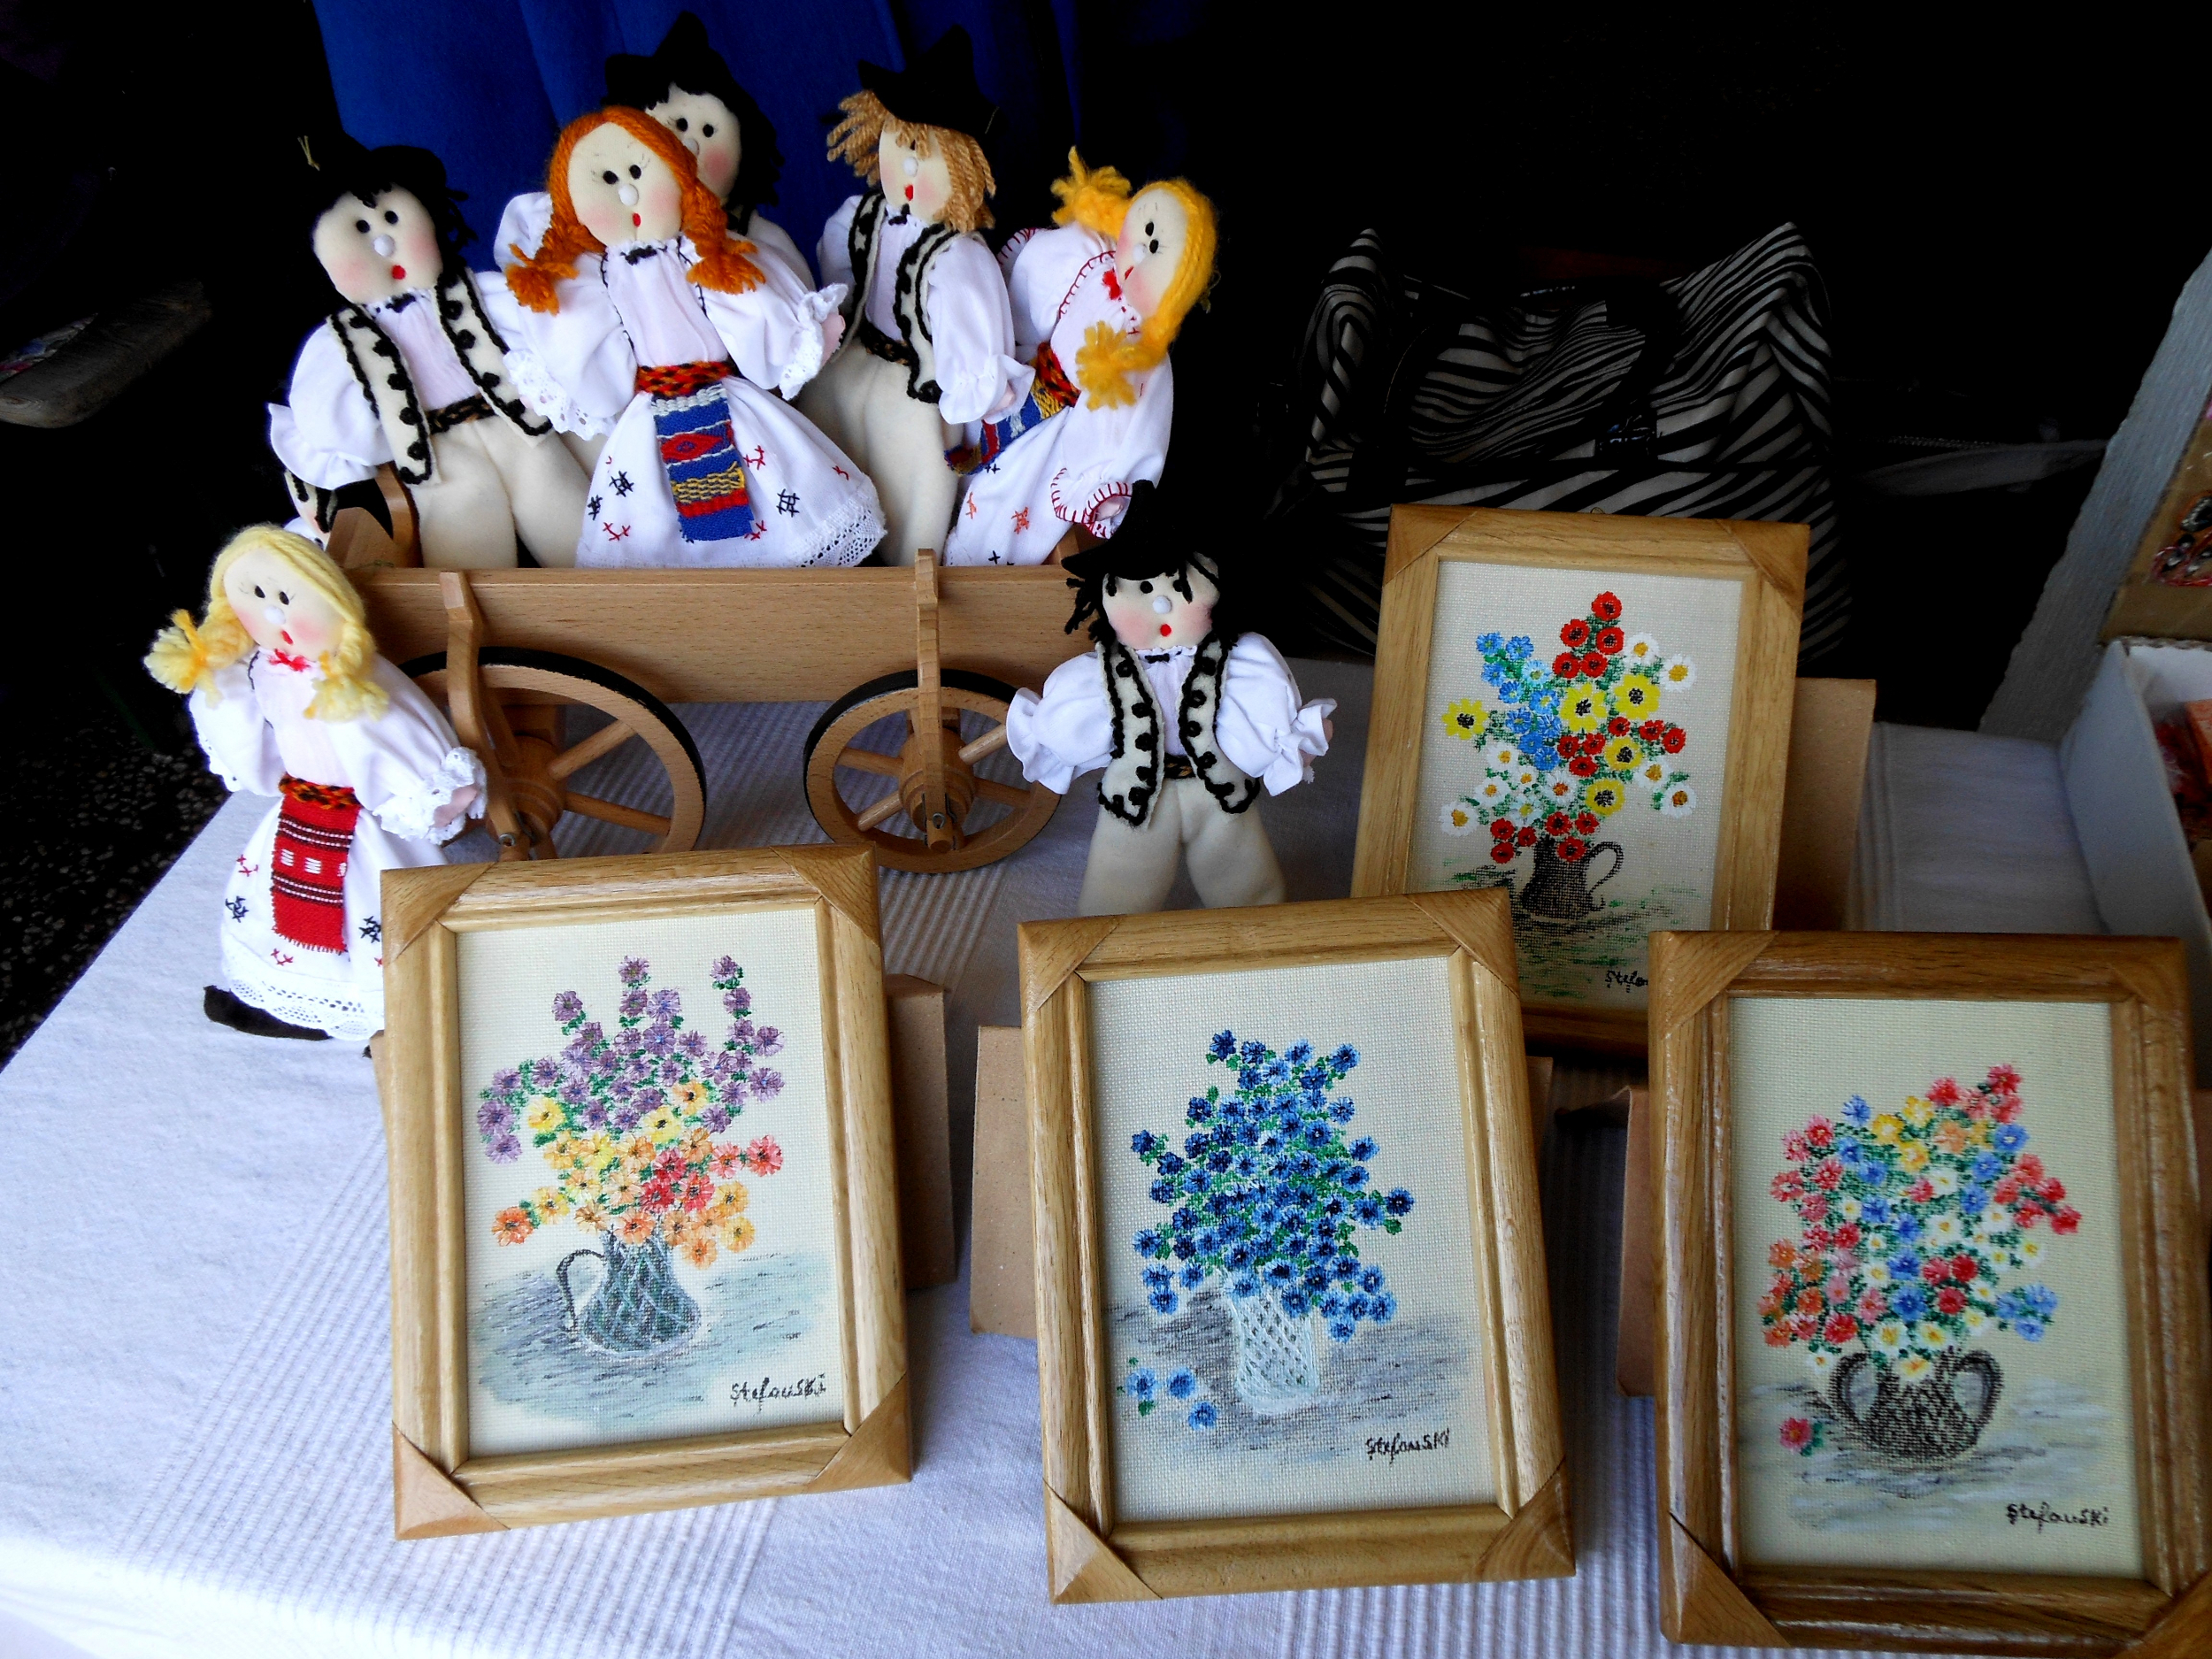 Romanian Traditional dolls and paintings